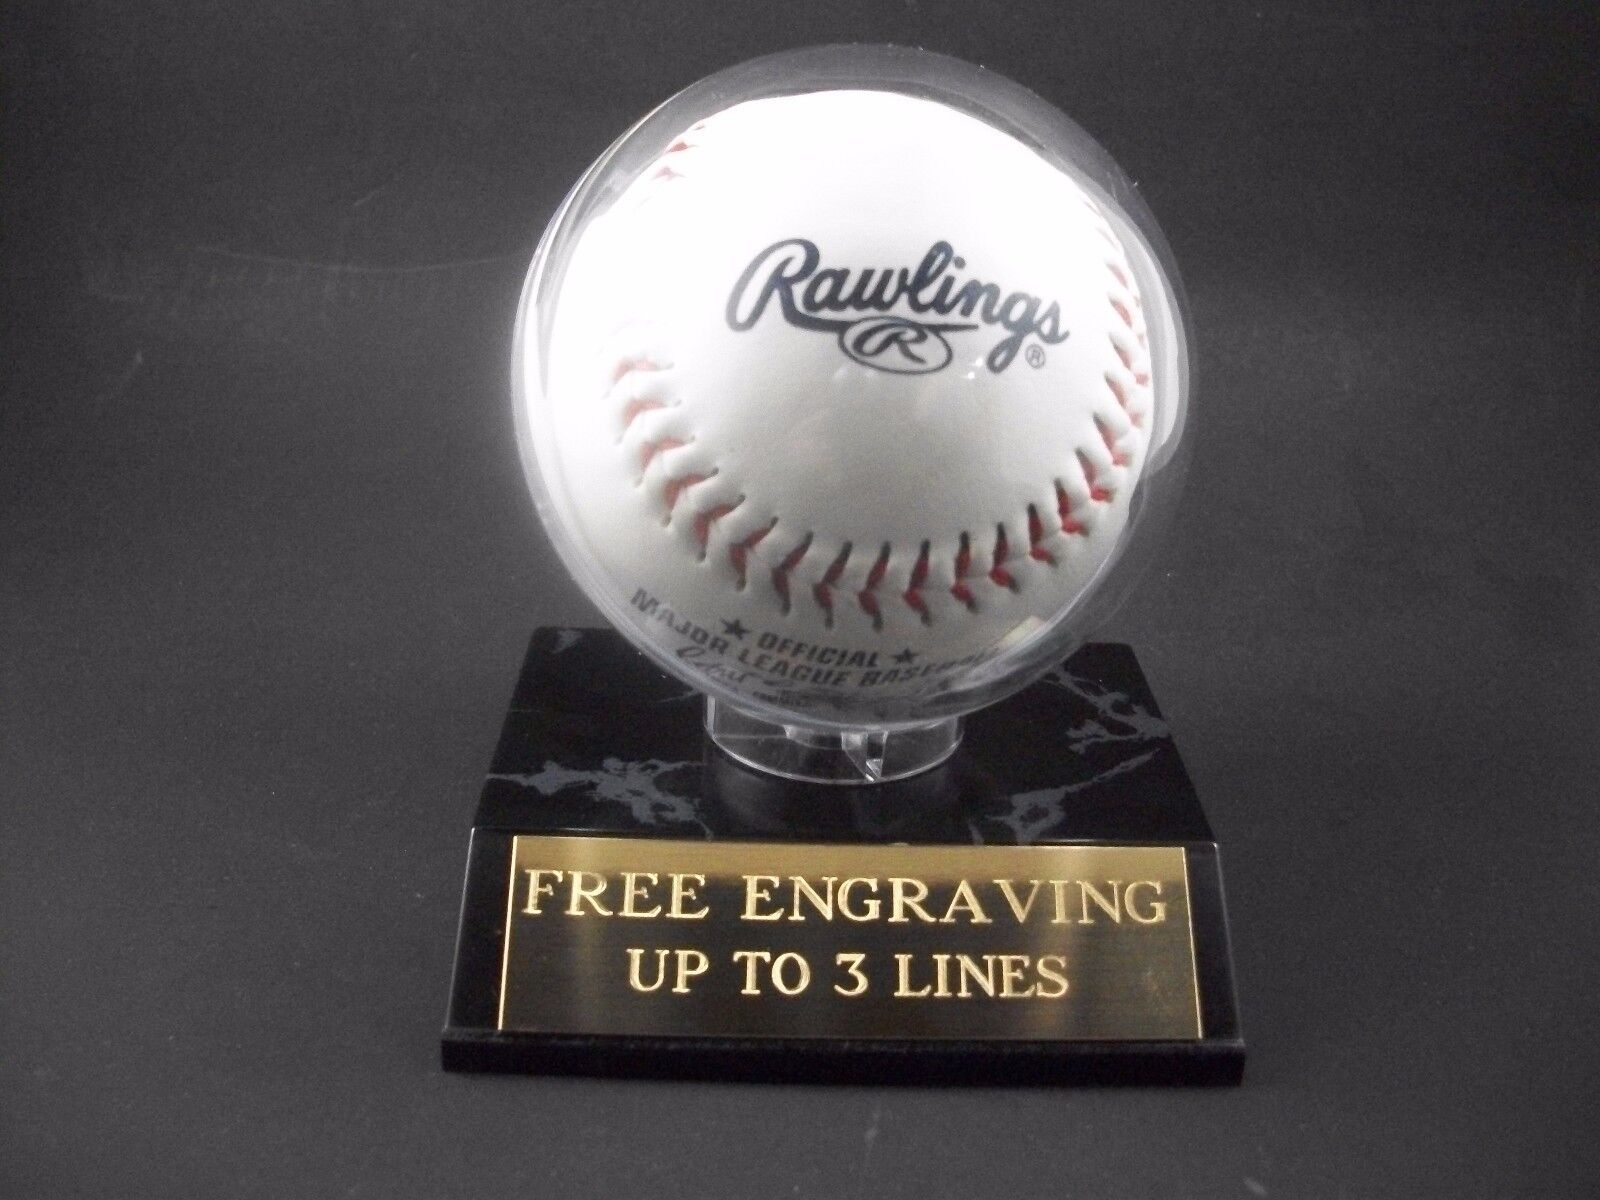 Custom Engraved Baseball Holder, Display Case With Free Engraving